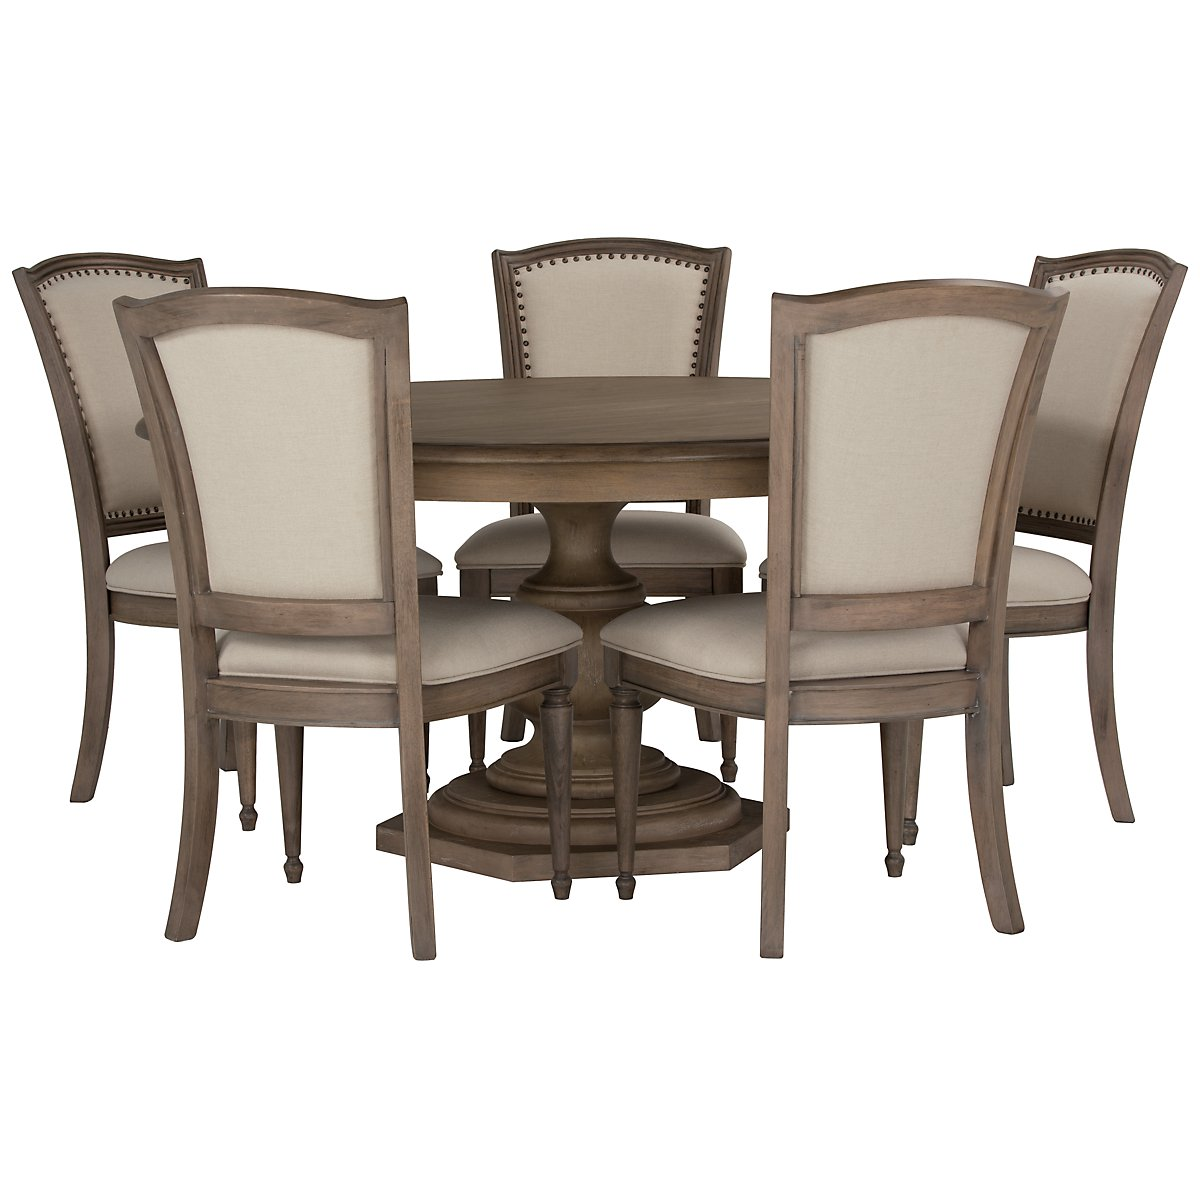 Haddie Light Tone Round Table & 4 Wood Chairs